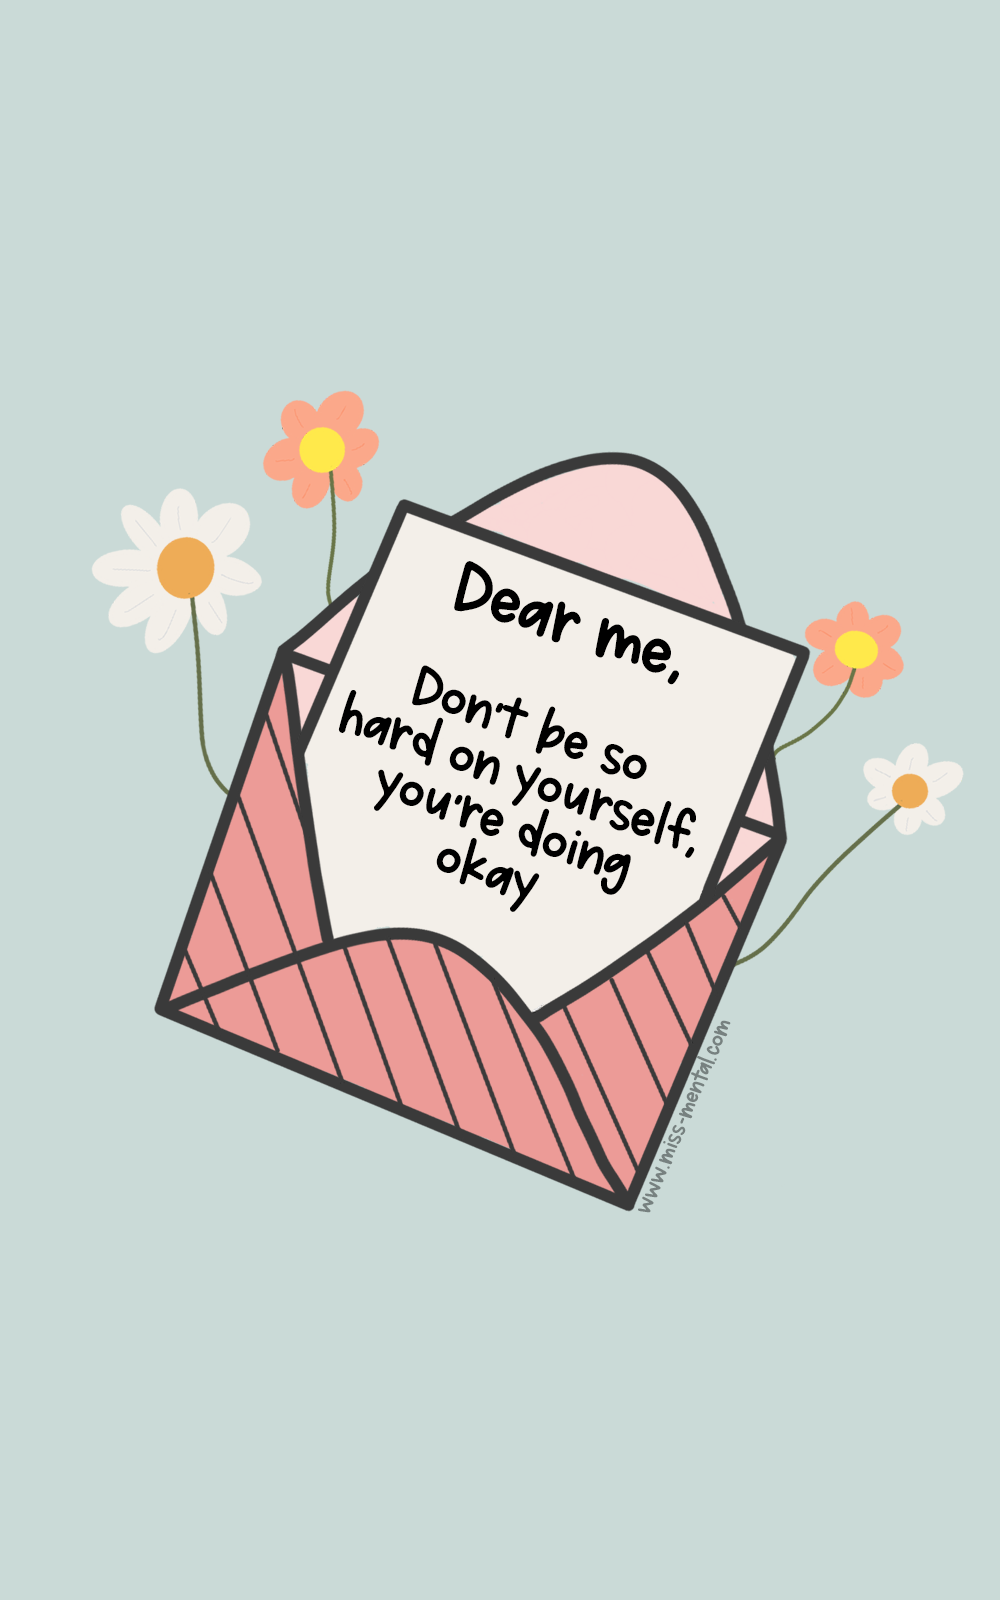 Positive quote mental health art | Dear me don't be so hard on yourself, you're doing okay